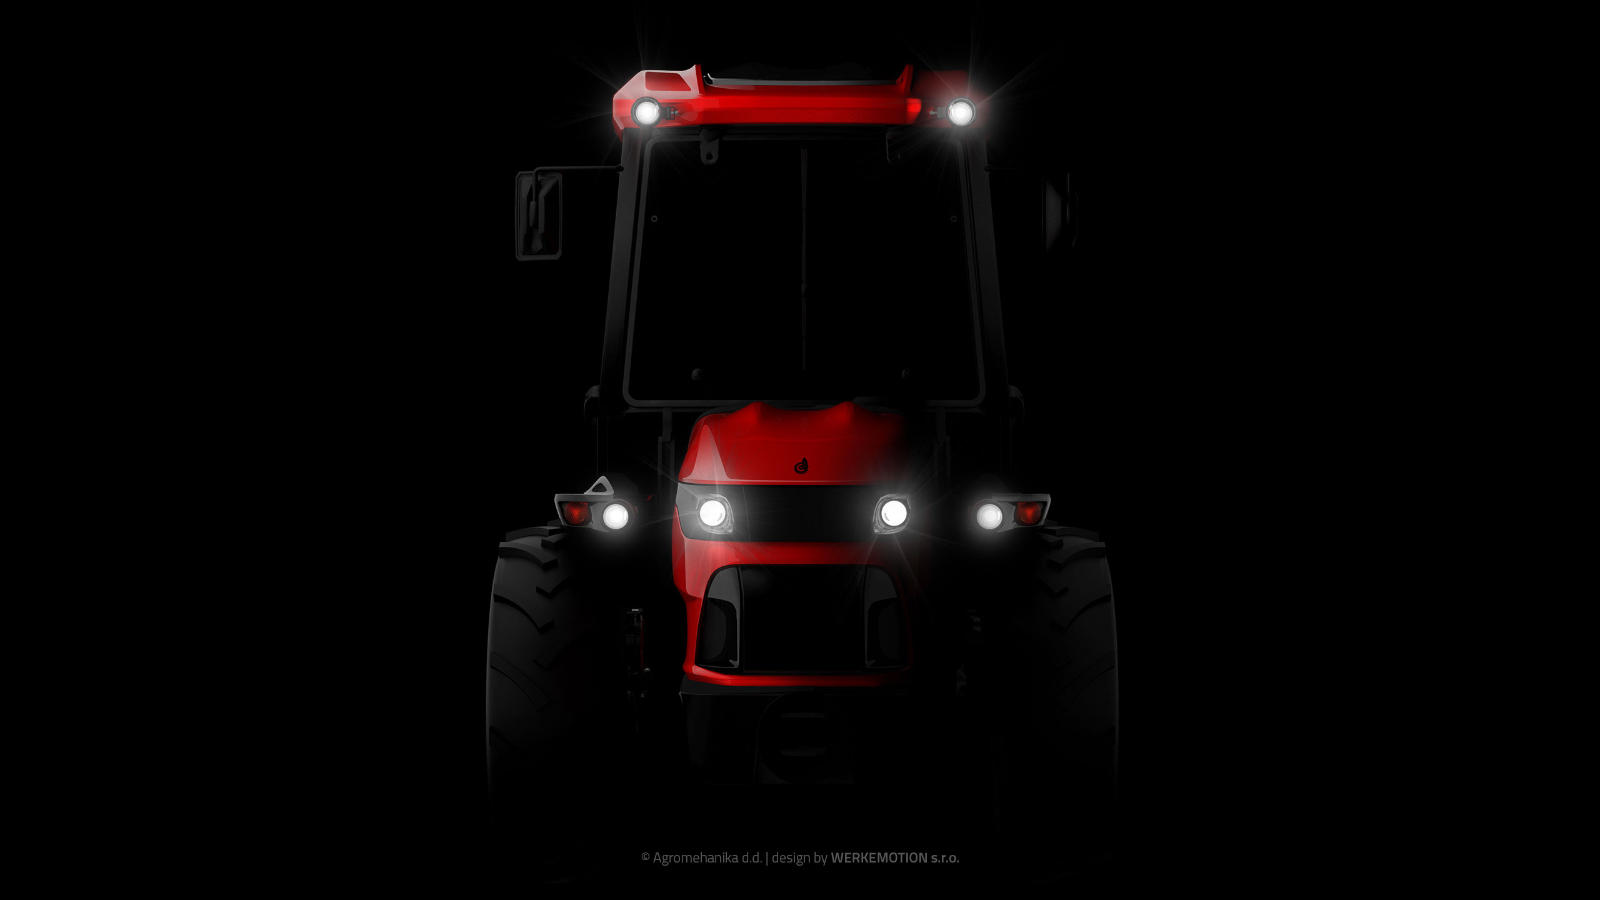 Teaser of new Agromehanika tractor design by WERKEMOTION